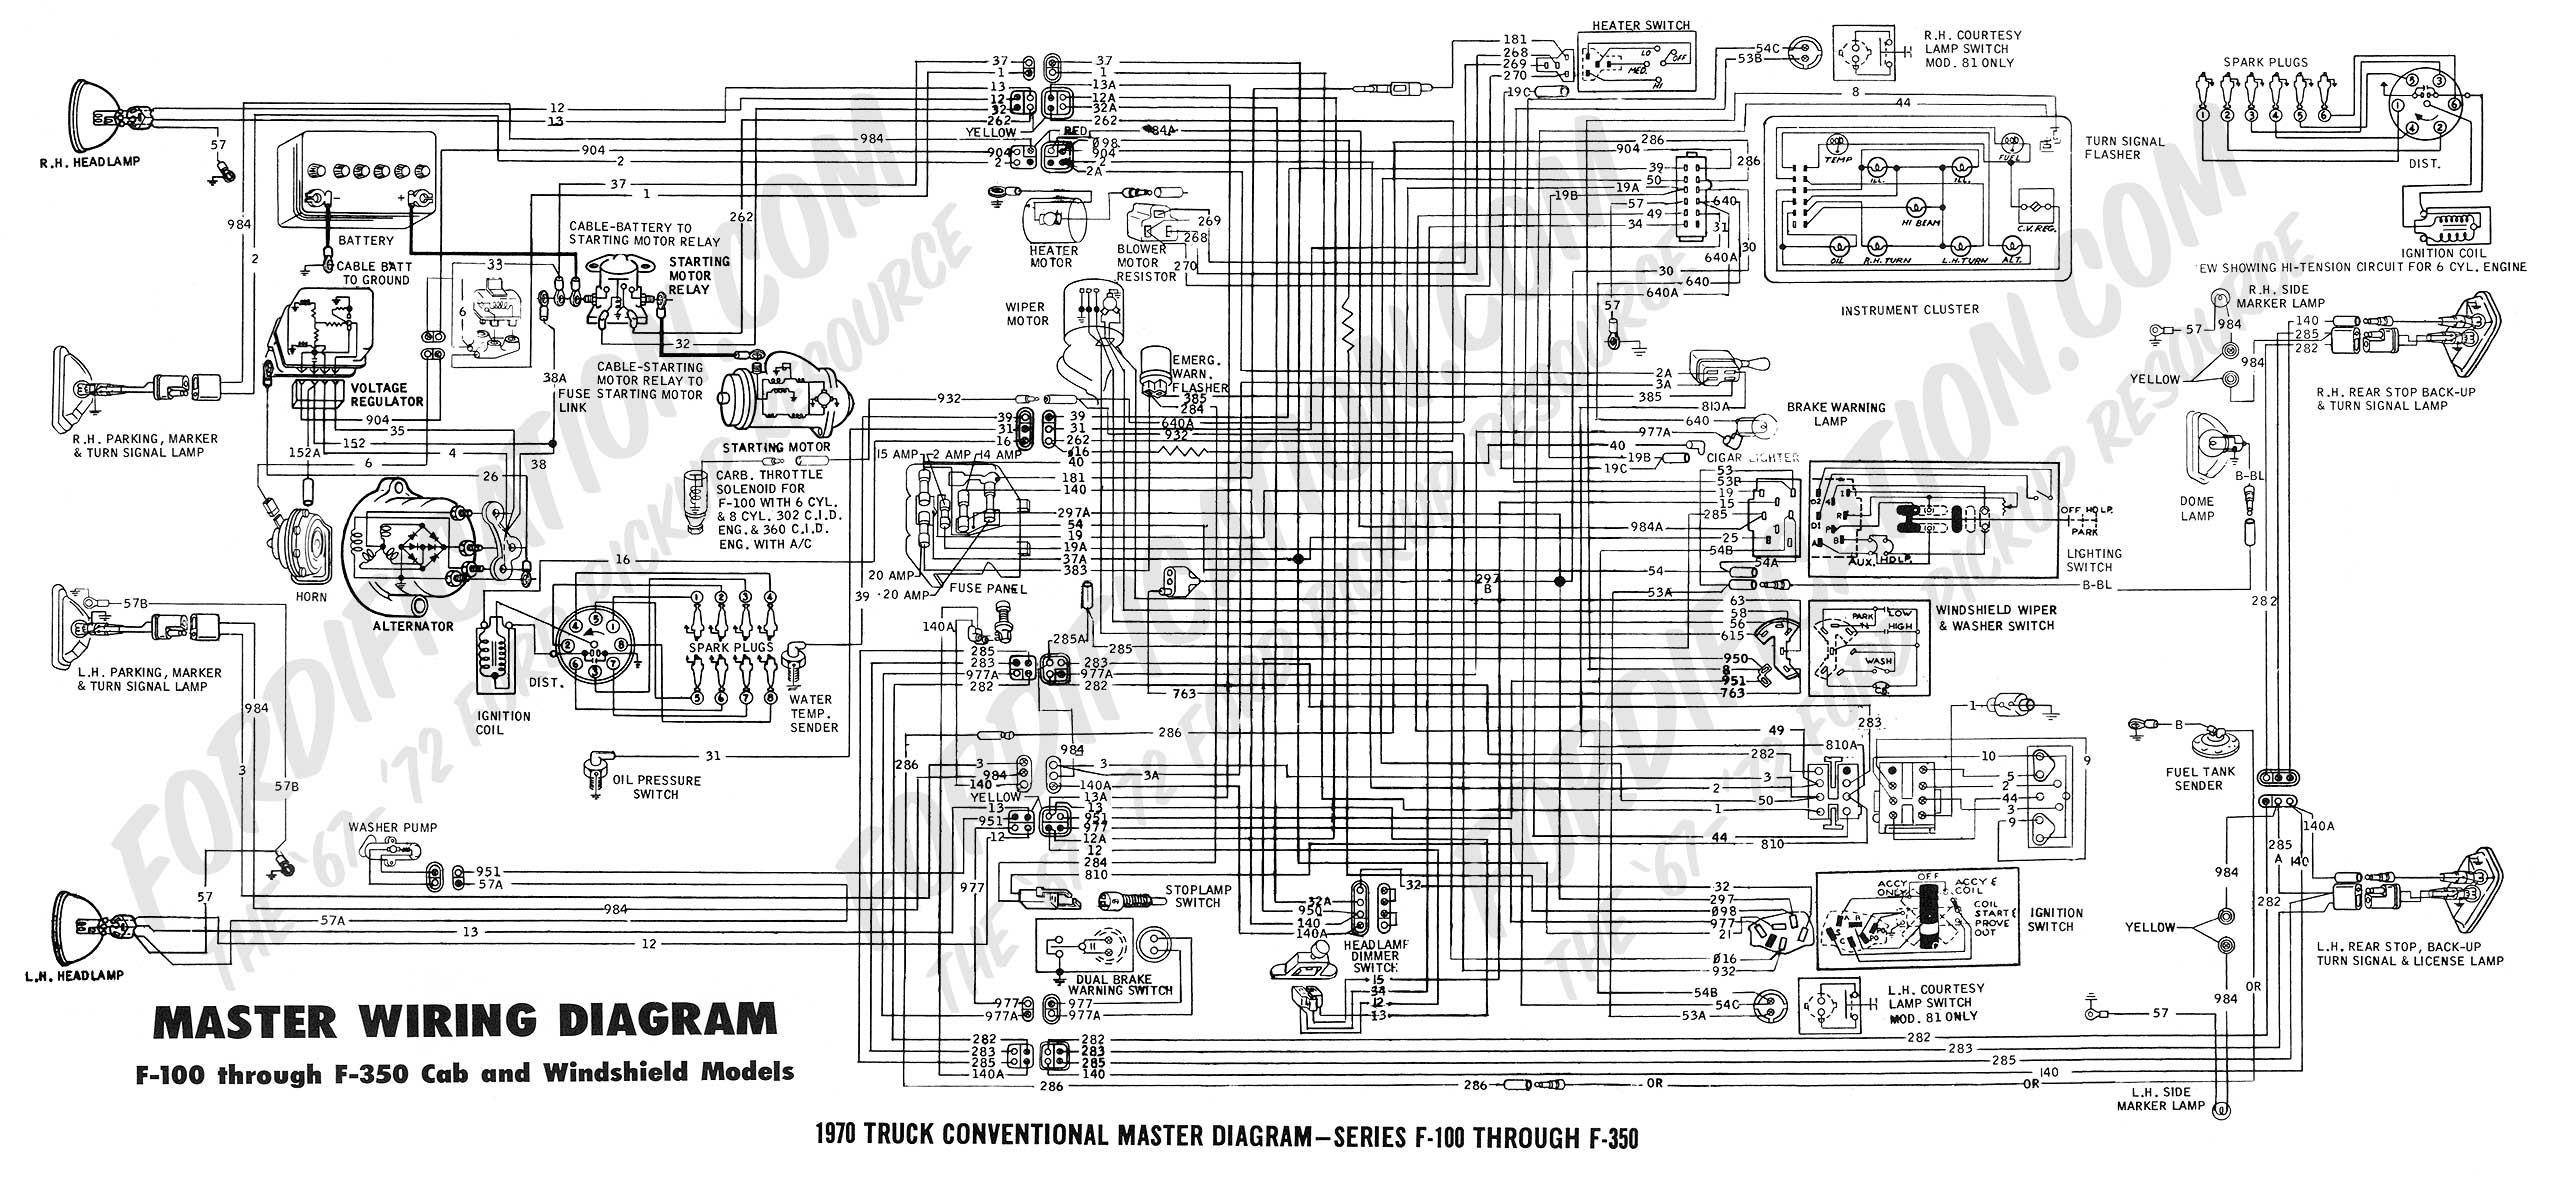 wiring diagram 70_master ford truck technical drawings and schematics section h wiring Rock Layes Tilt Diagram at bakdesigns.co